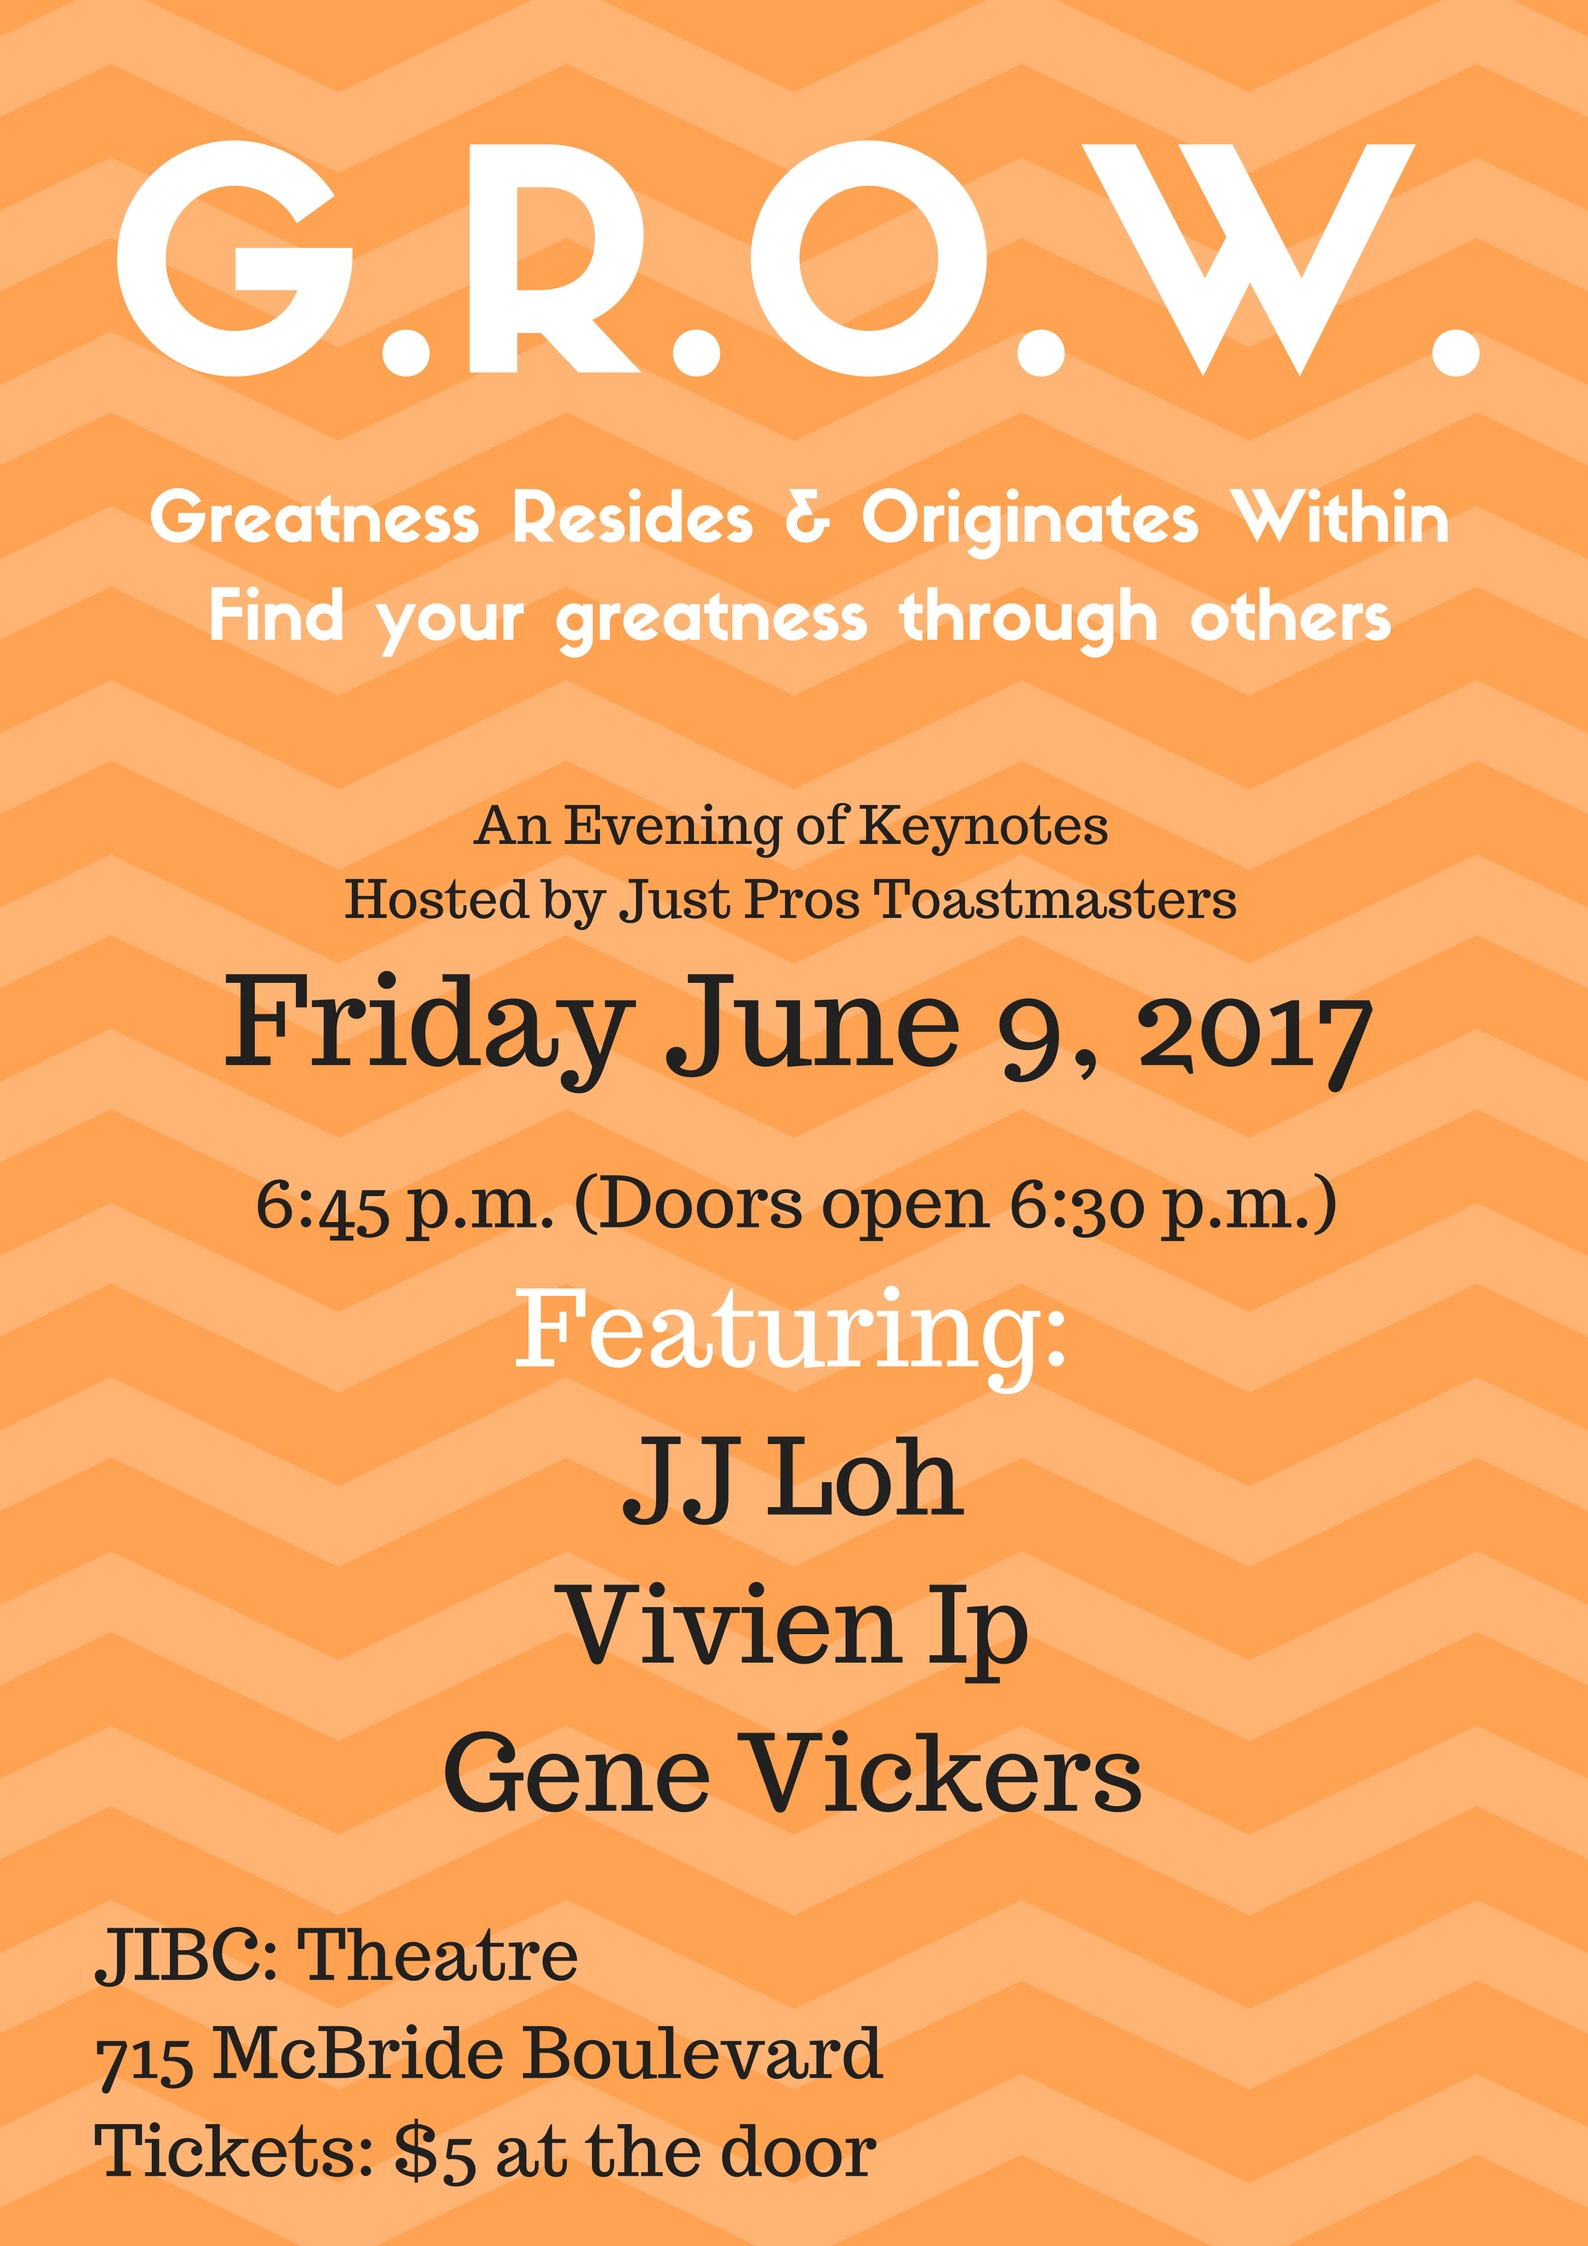 GROW: Greatness Resides and Originates Within! Come and see us June 9, 2017!